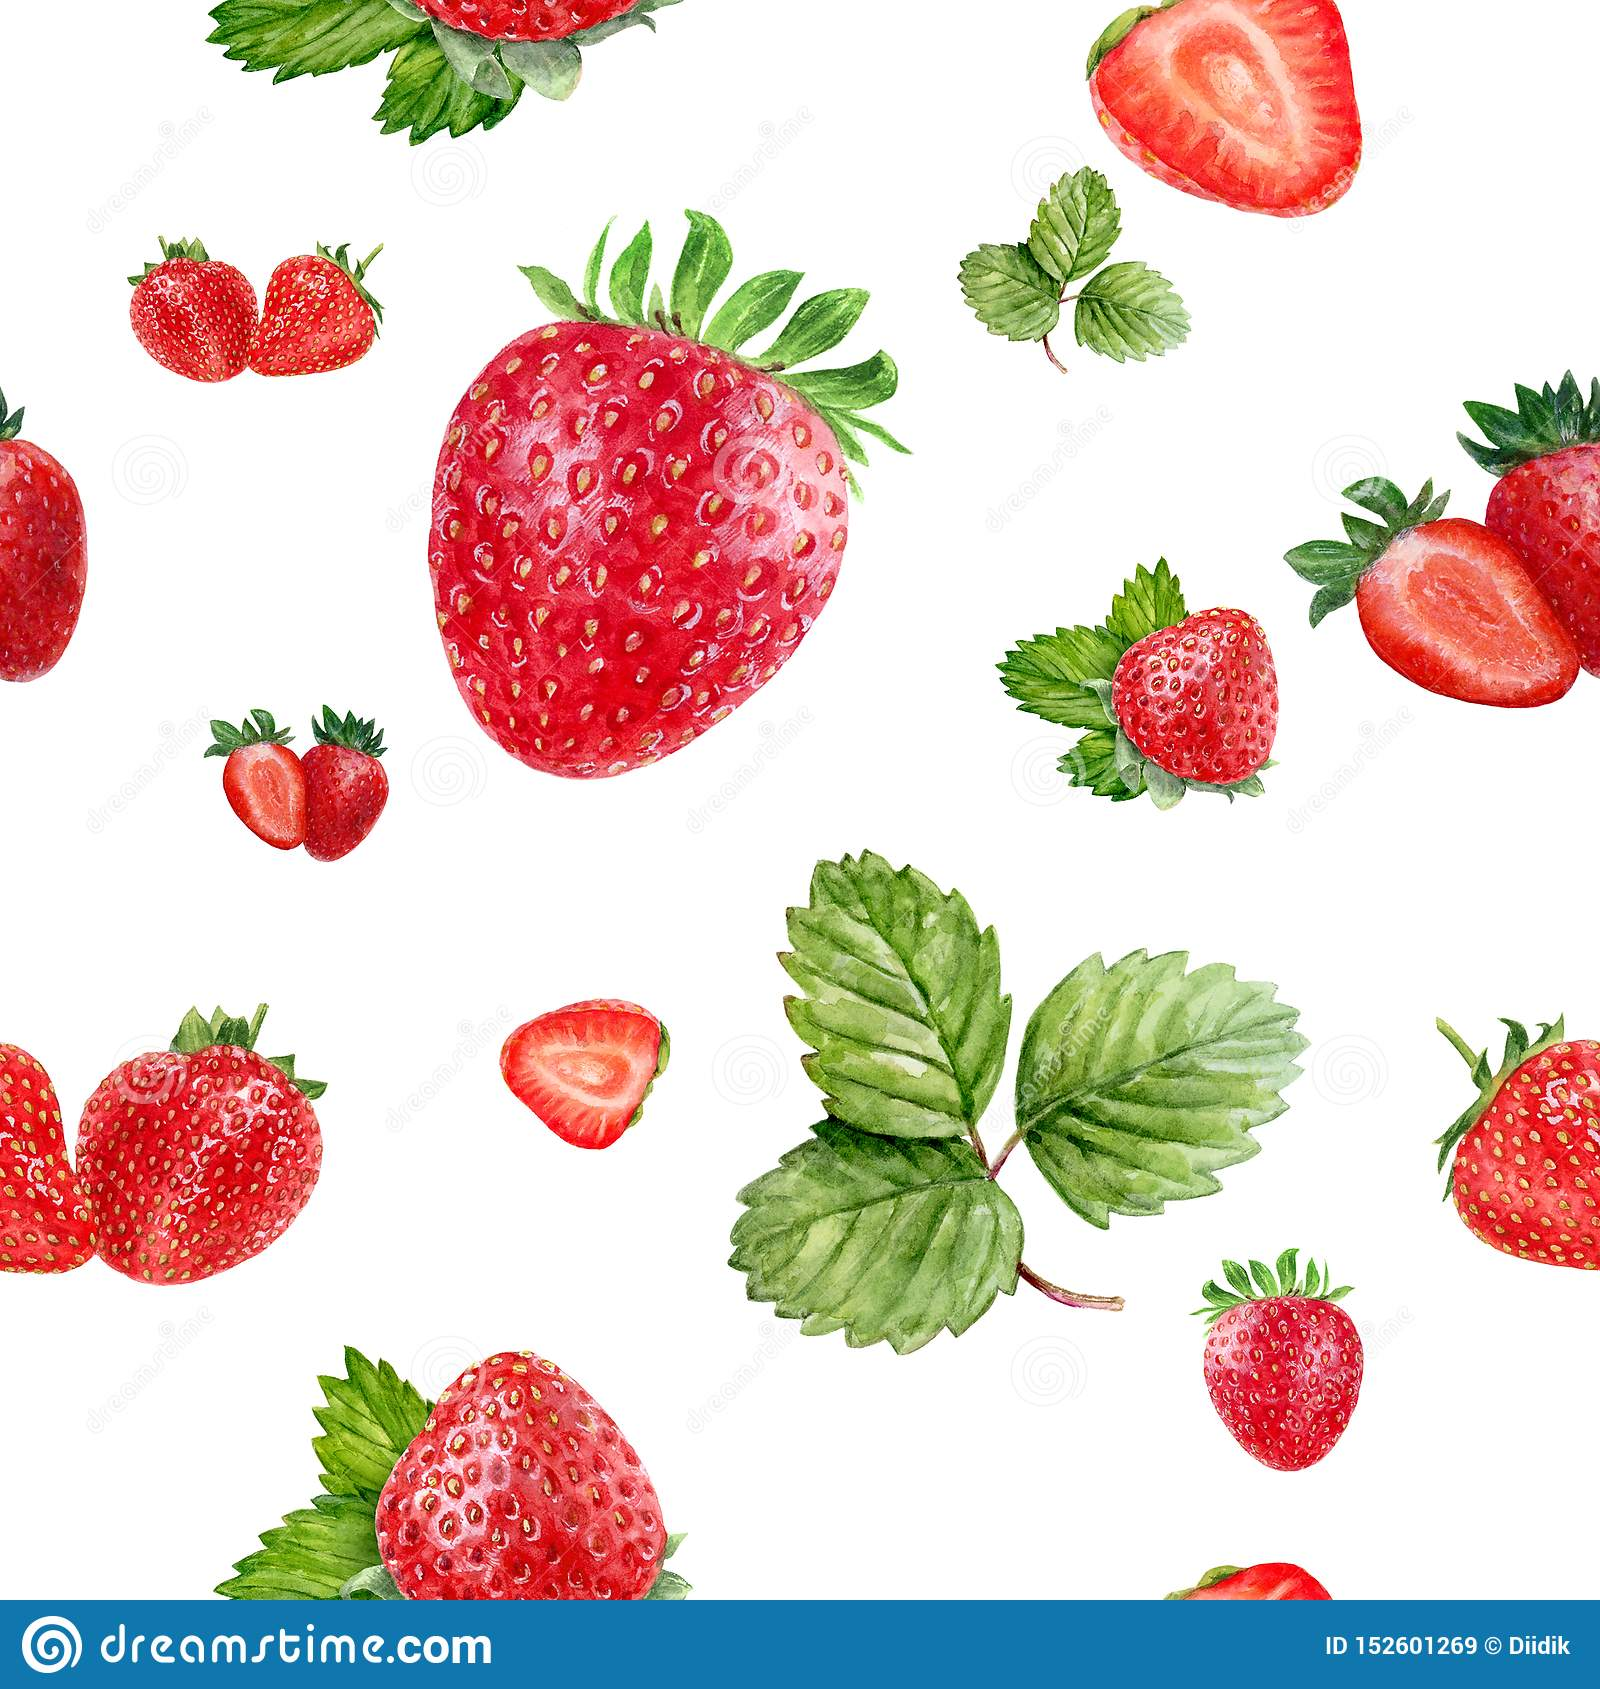 Watercolor hand drawn strawberry isolated seamless pattern.